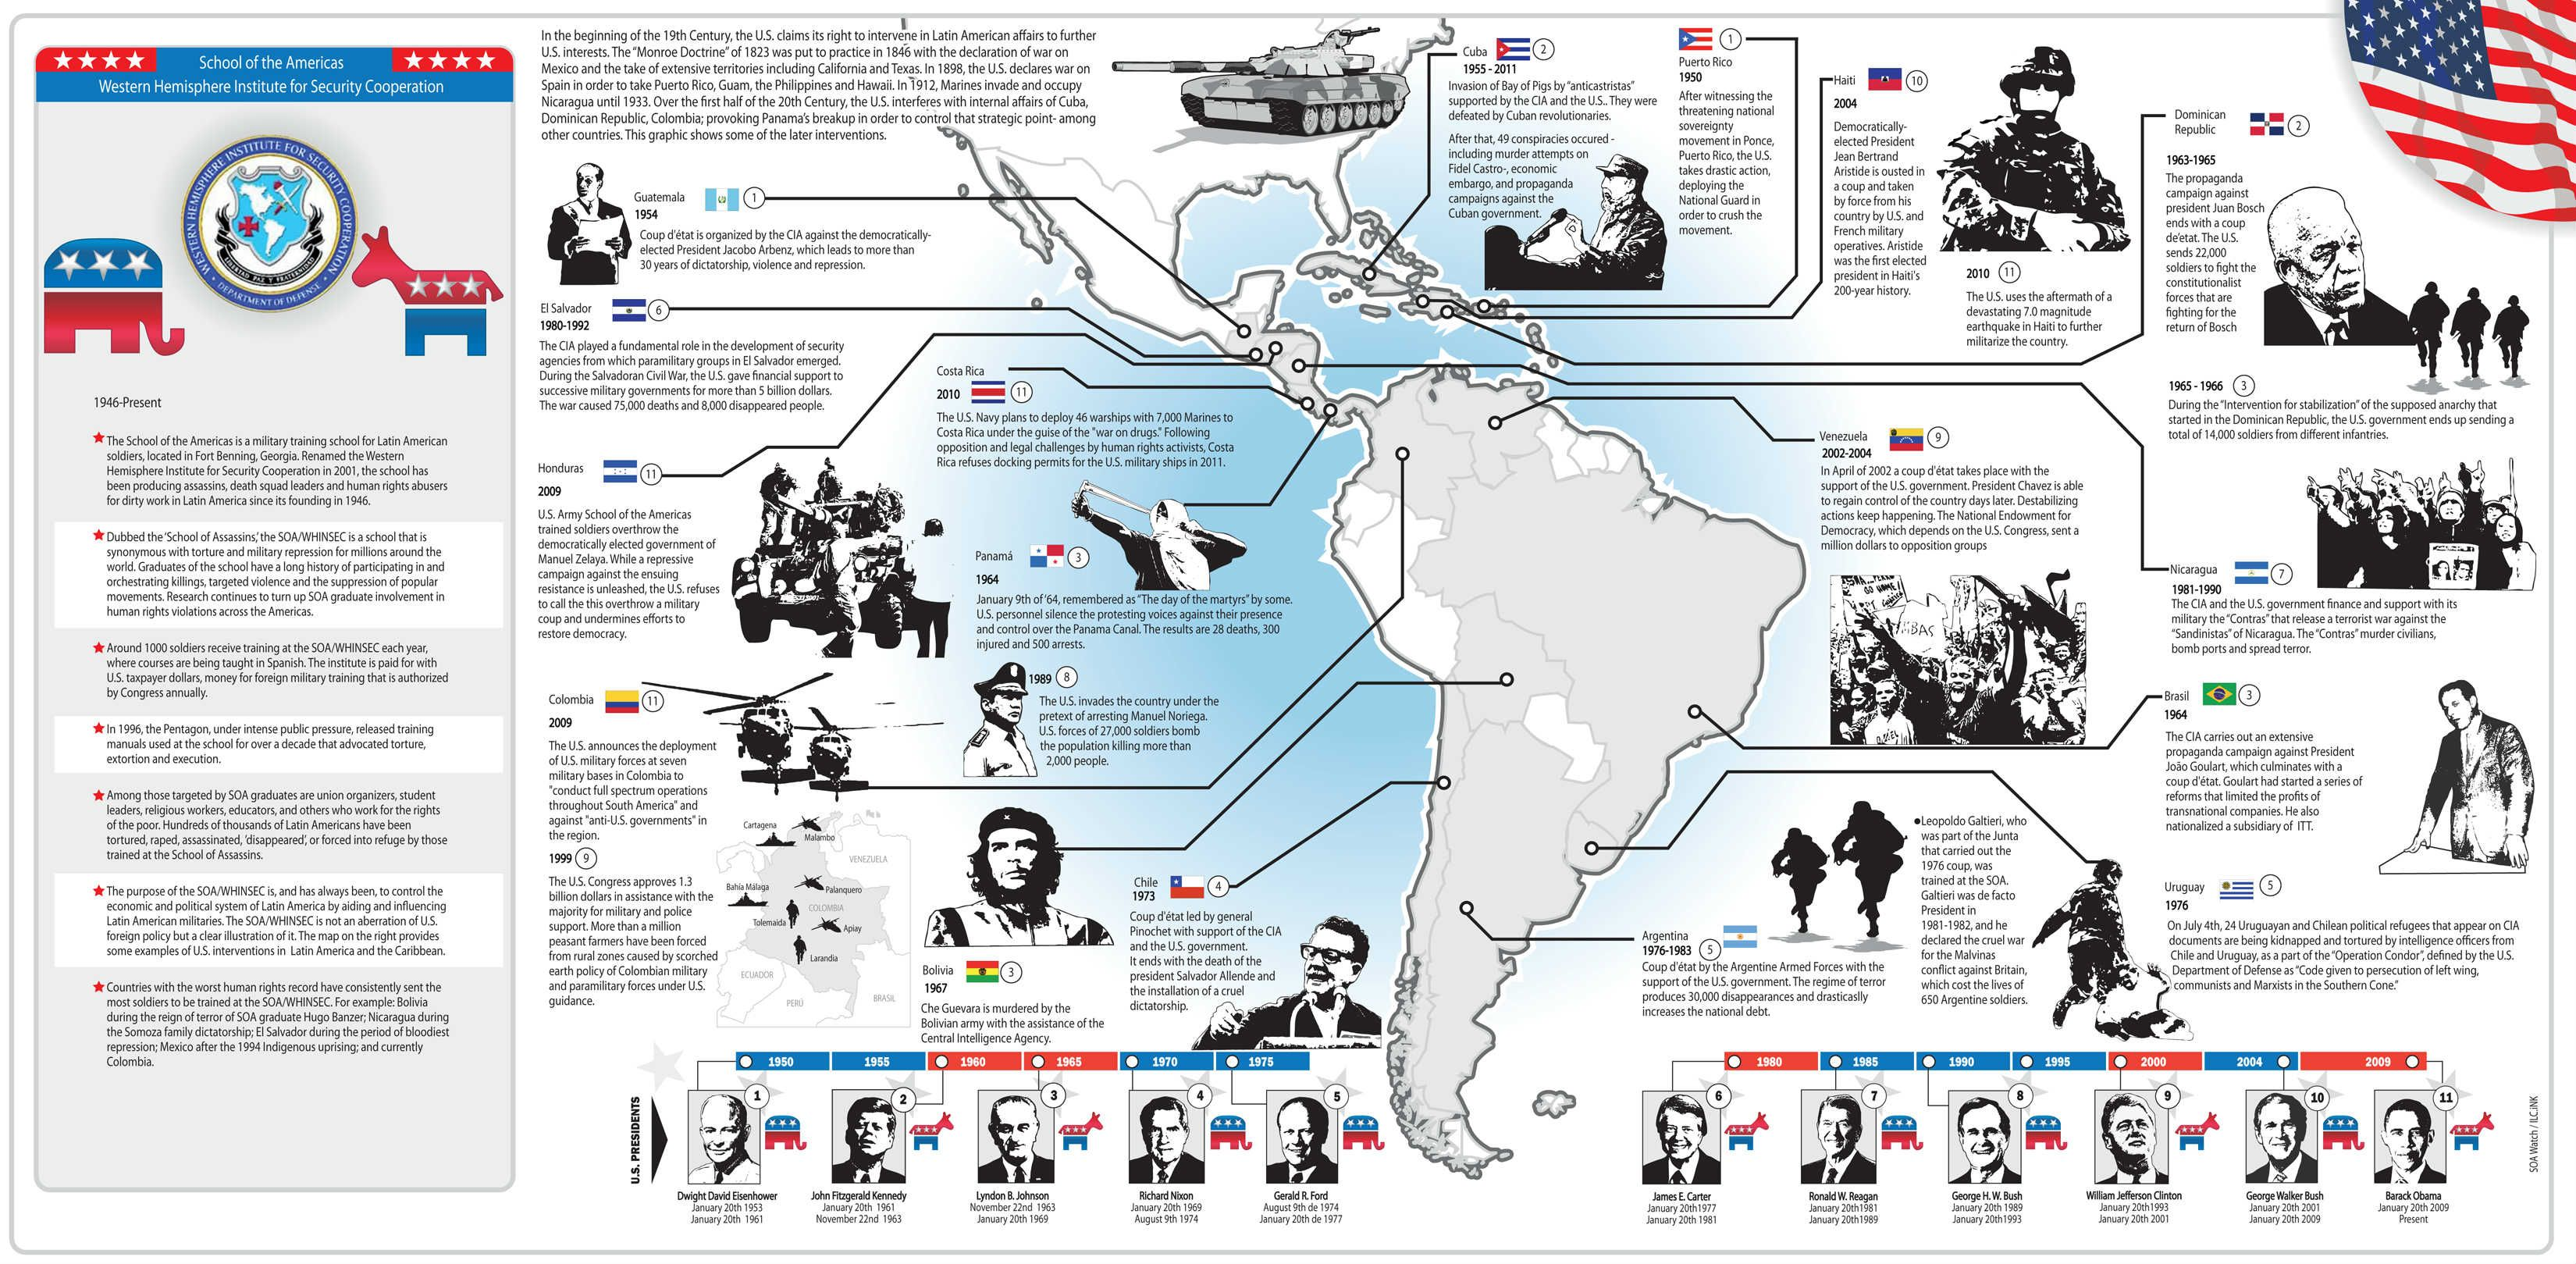 Us Intervention In Latin America Map The Washington Post | Military intervention, Schools in america, Map